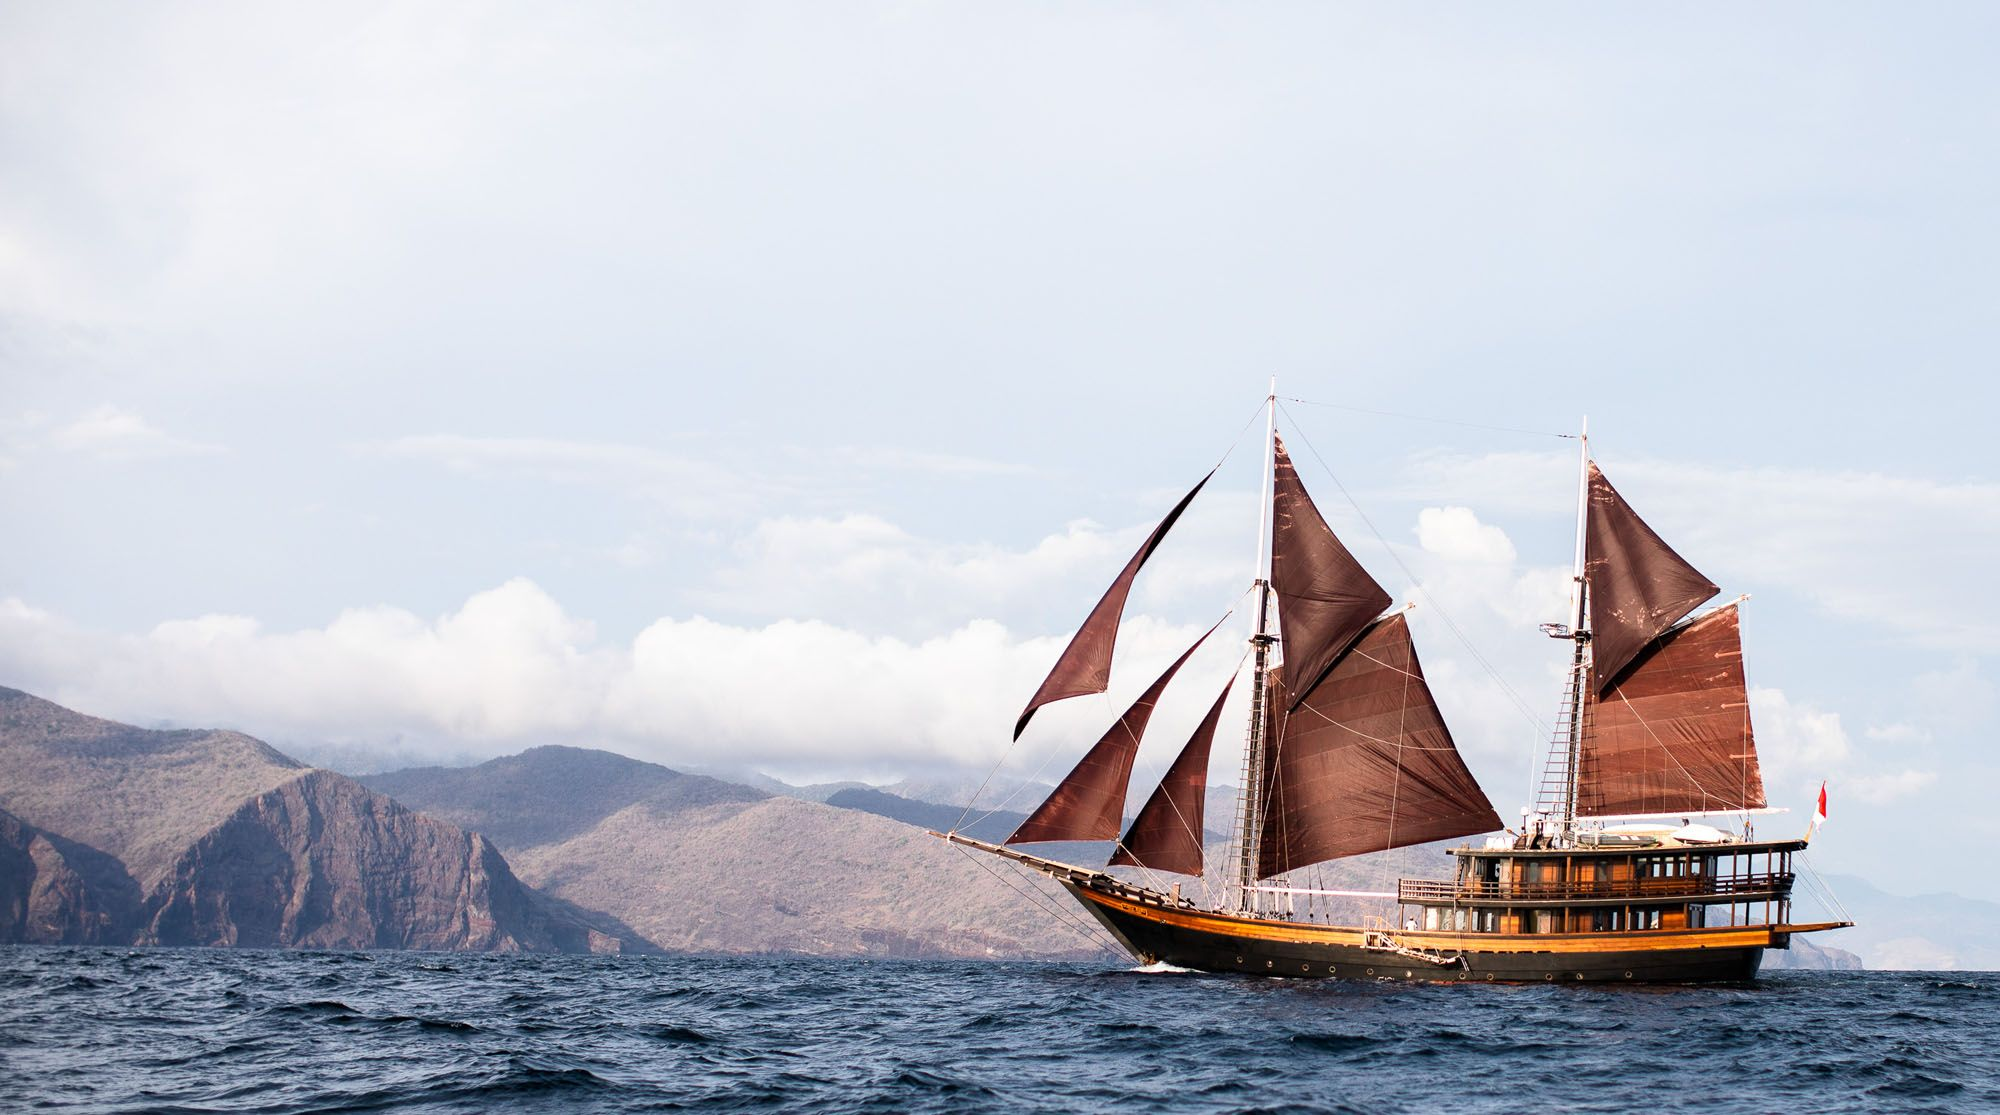 Meet Dunia Baru—A Luxury Phinisi Yacht Made For Slow Travel Dreams